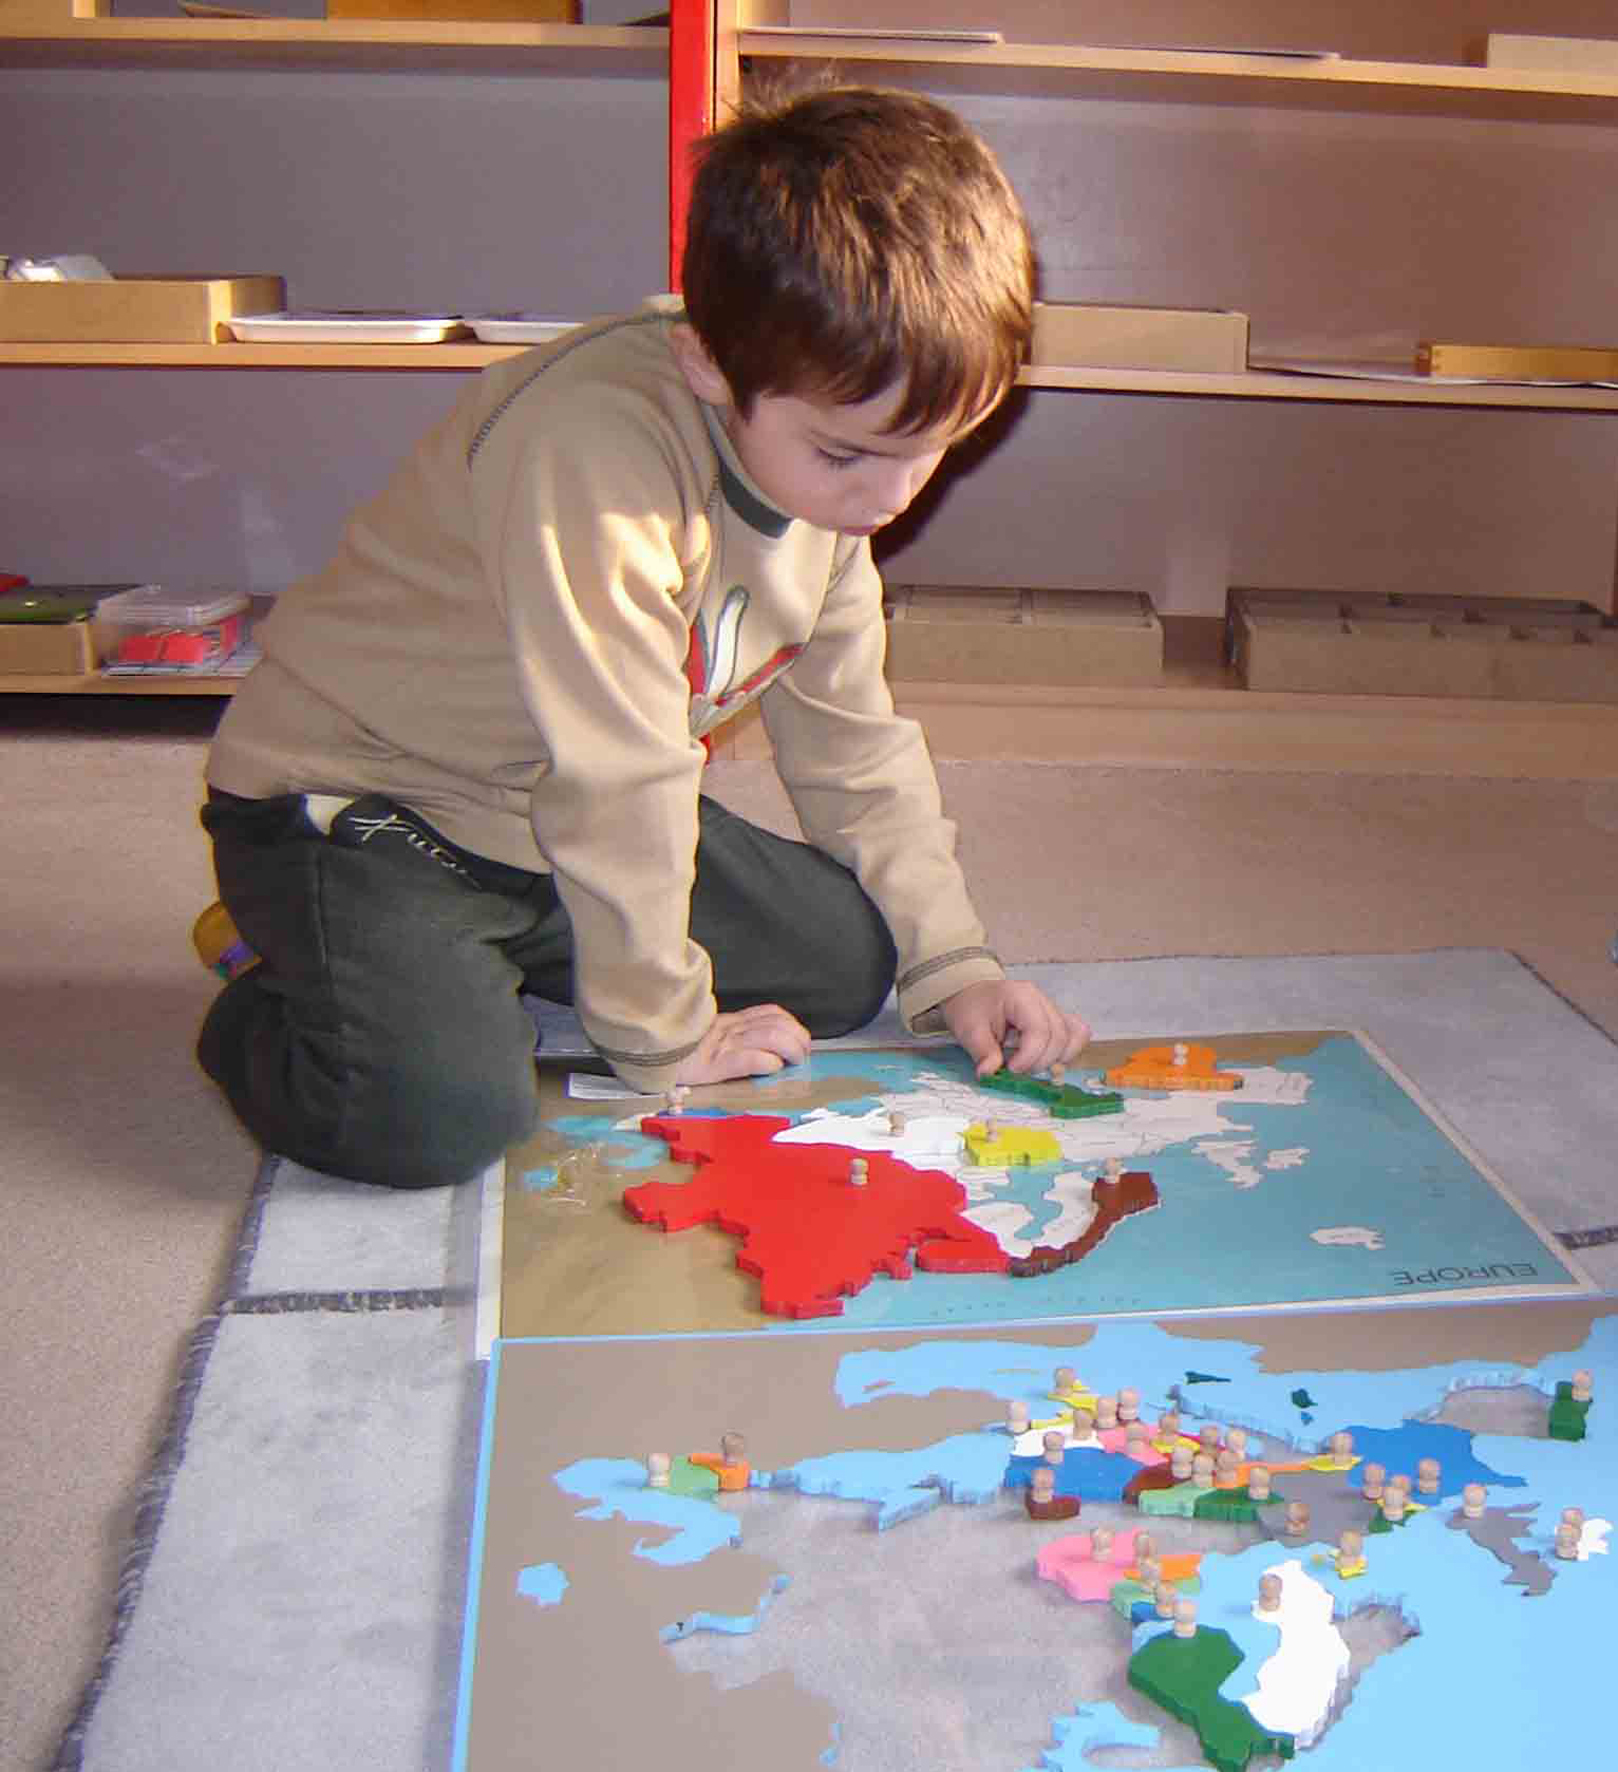 montessori method is for pre school children only What you need to know about montessori preschools montessori method provides a unique educational approach to meet the individual needs of each child, says wallace montessori preschool programs may have only some components.